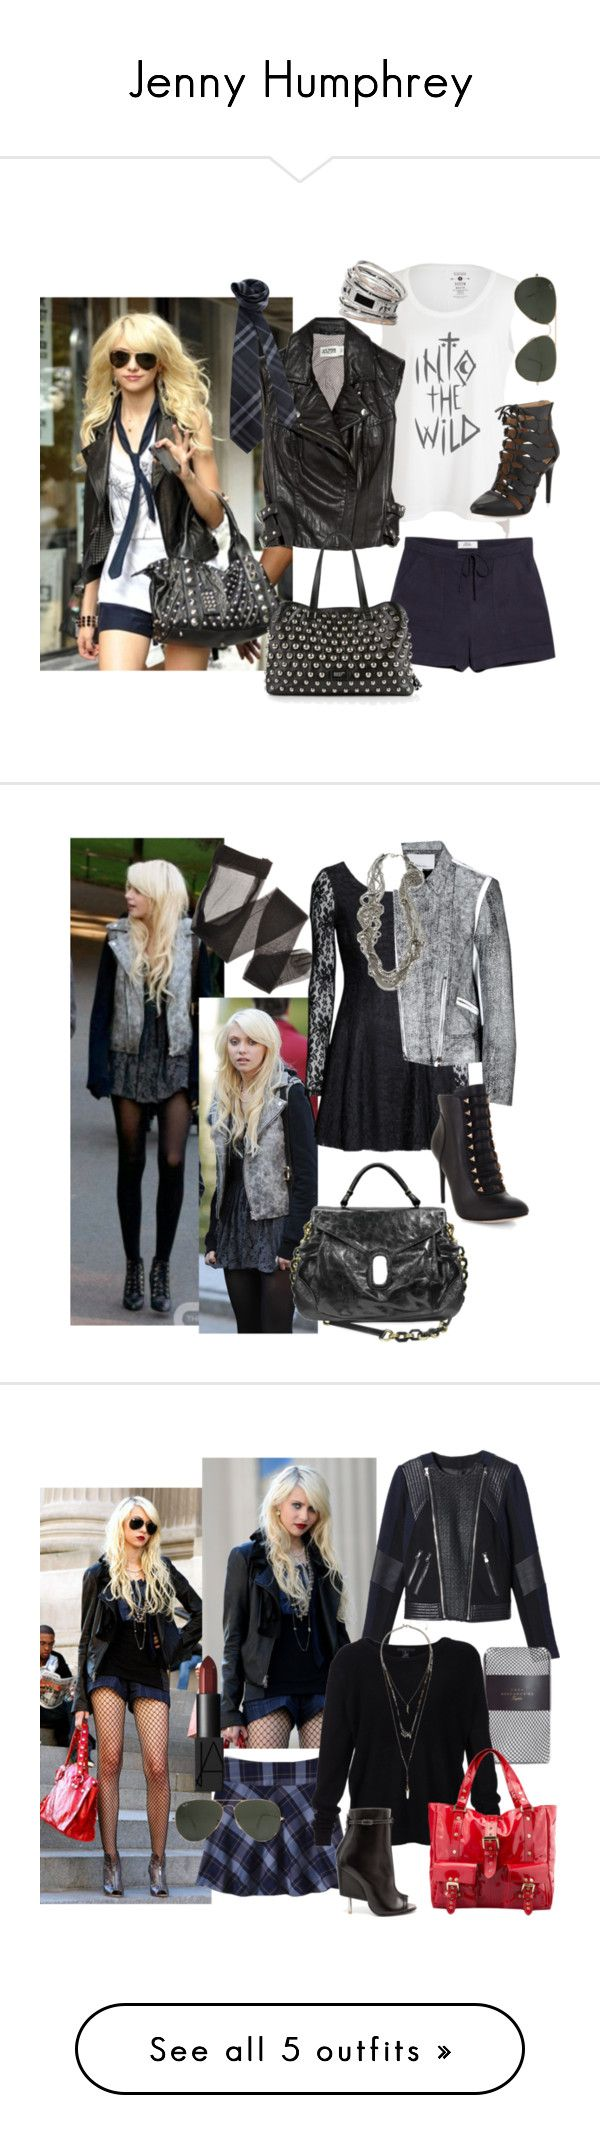 """Jenny Humphrey"" by christina95styles ❤ liked on Polyvore"